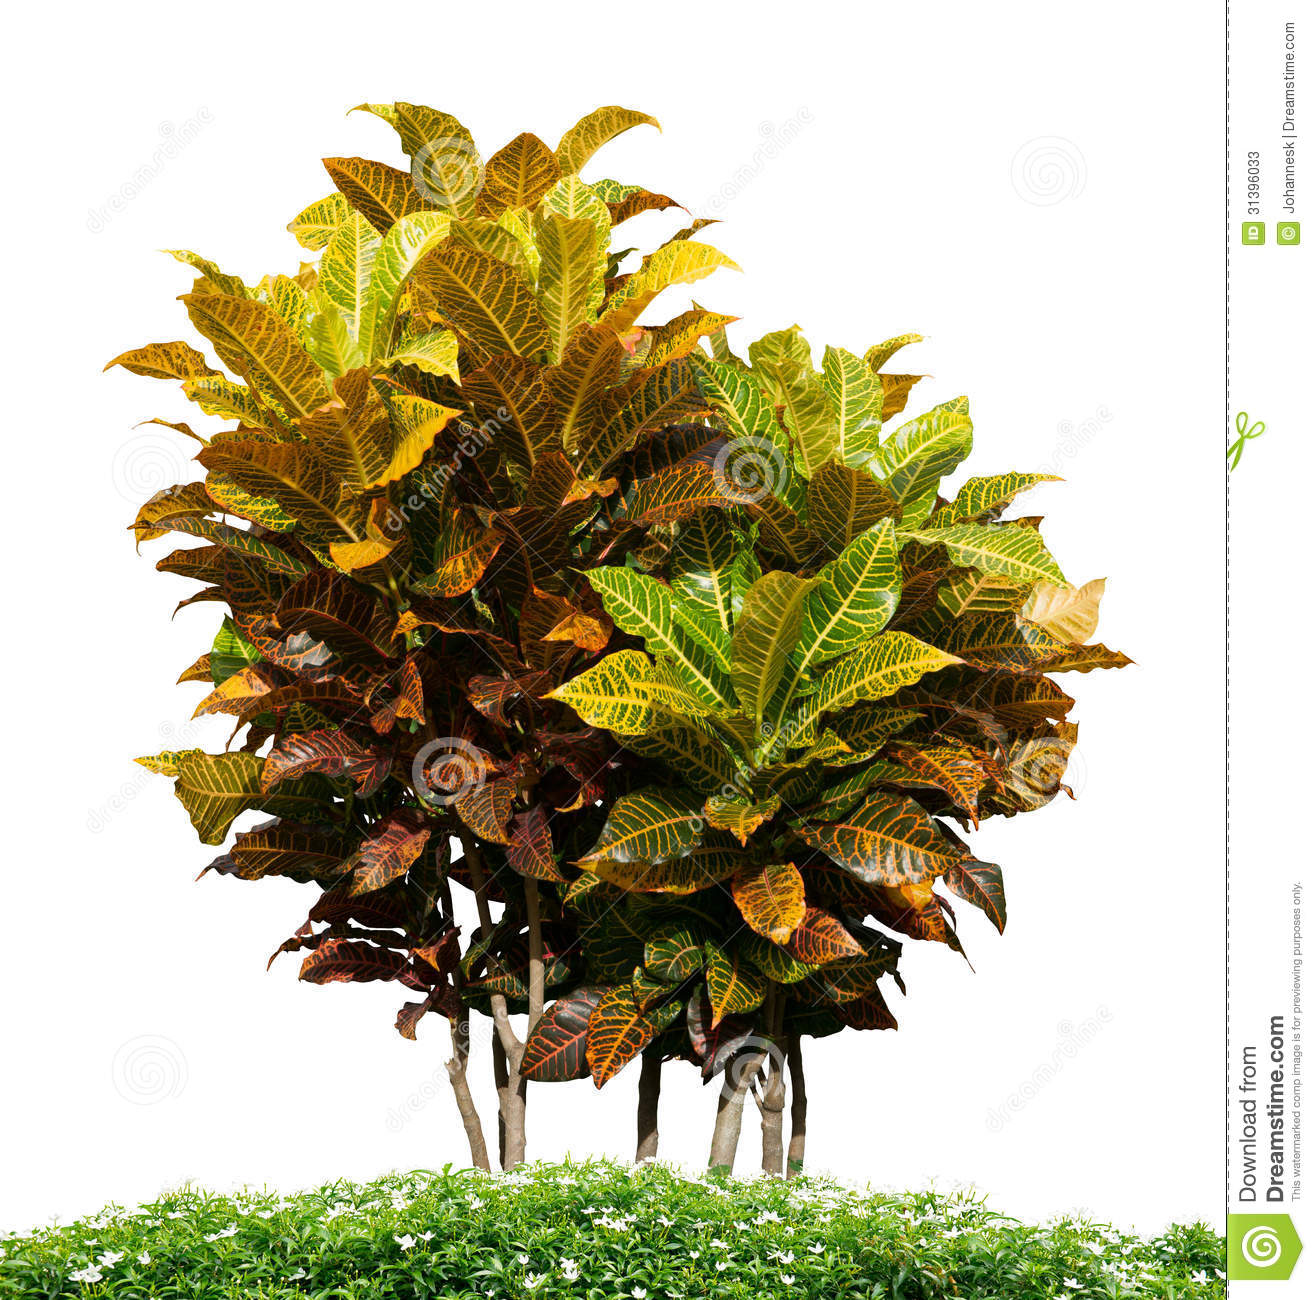 Ornamental plant stock photos image 31396033 for Ornamental garden plants